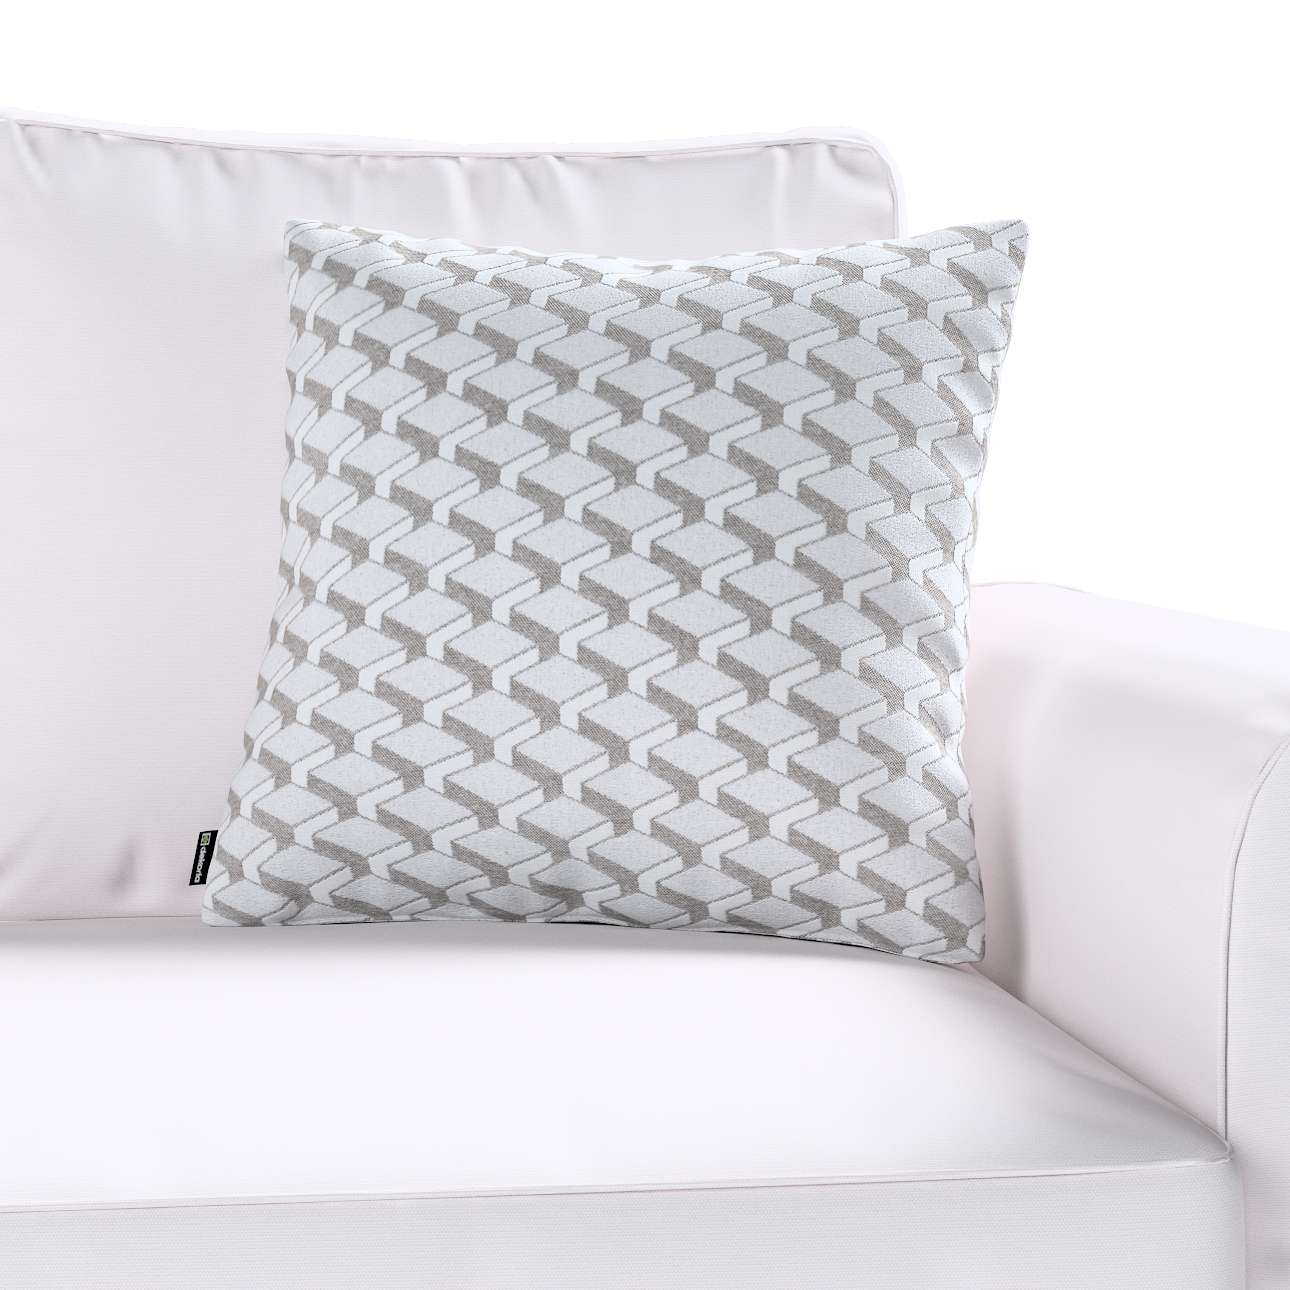 Kinga cushion cover 43 x 43 cm (17 x 17 inch) in collection Rustica, fabric: 138-18